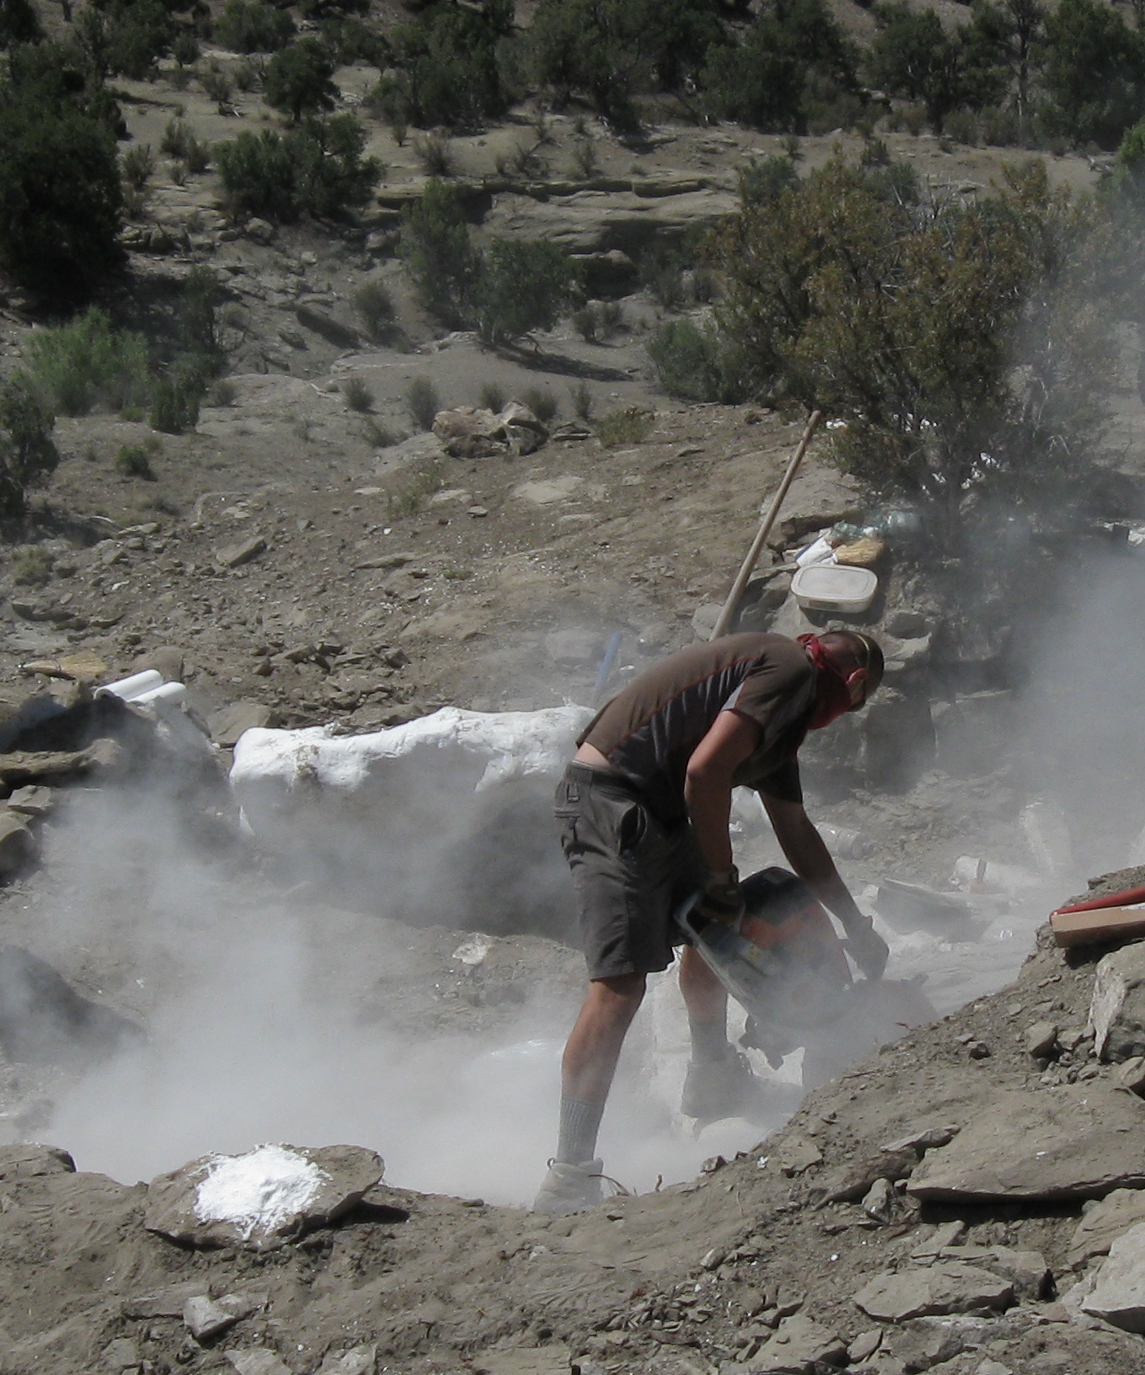 Using a rock saw to help excavate a duckbilled dinosaur skeleton from Grand Staircase Escalante National Monument, Southern Utah.